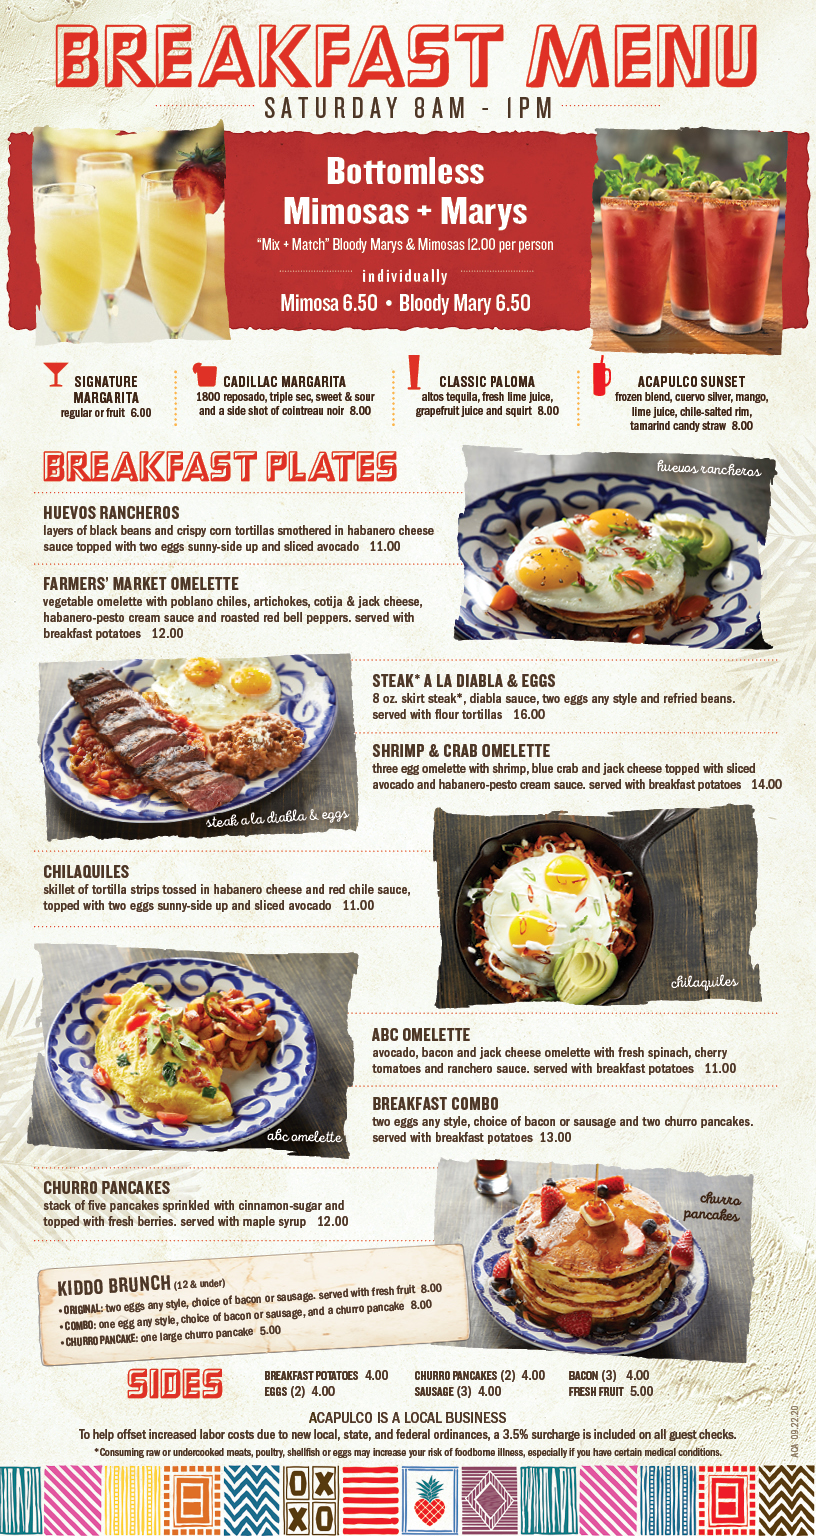 ALL-NEW Saturday Breakfast Menu featuring over 8 new items! Bottomless Mix & Match Mimosas + Bloody Marys. Served 8am – 1pm.